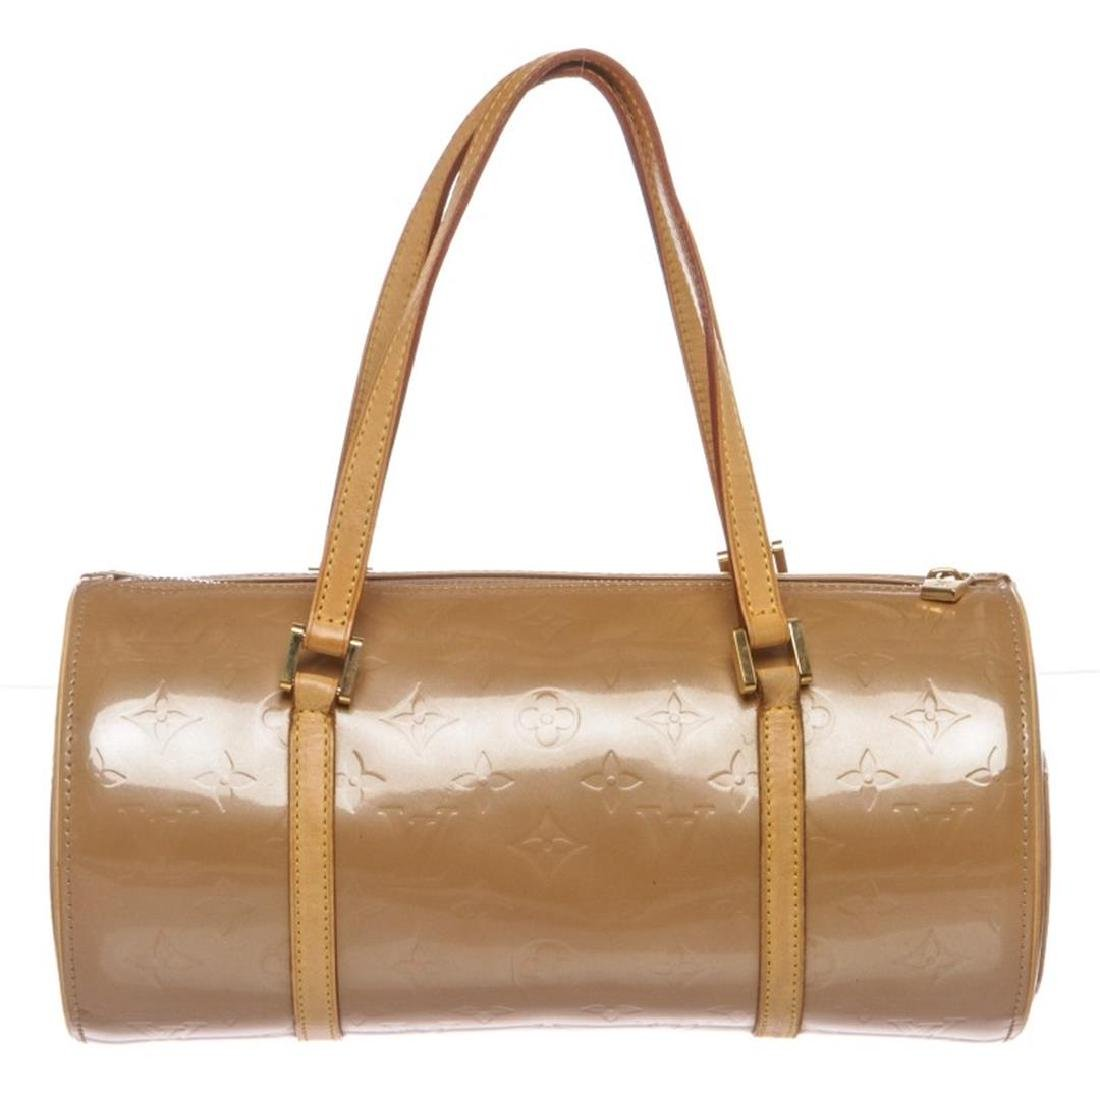 Louis Vuitton Beige Vernis Leather Bedford Barrel Bag